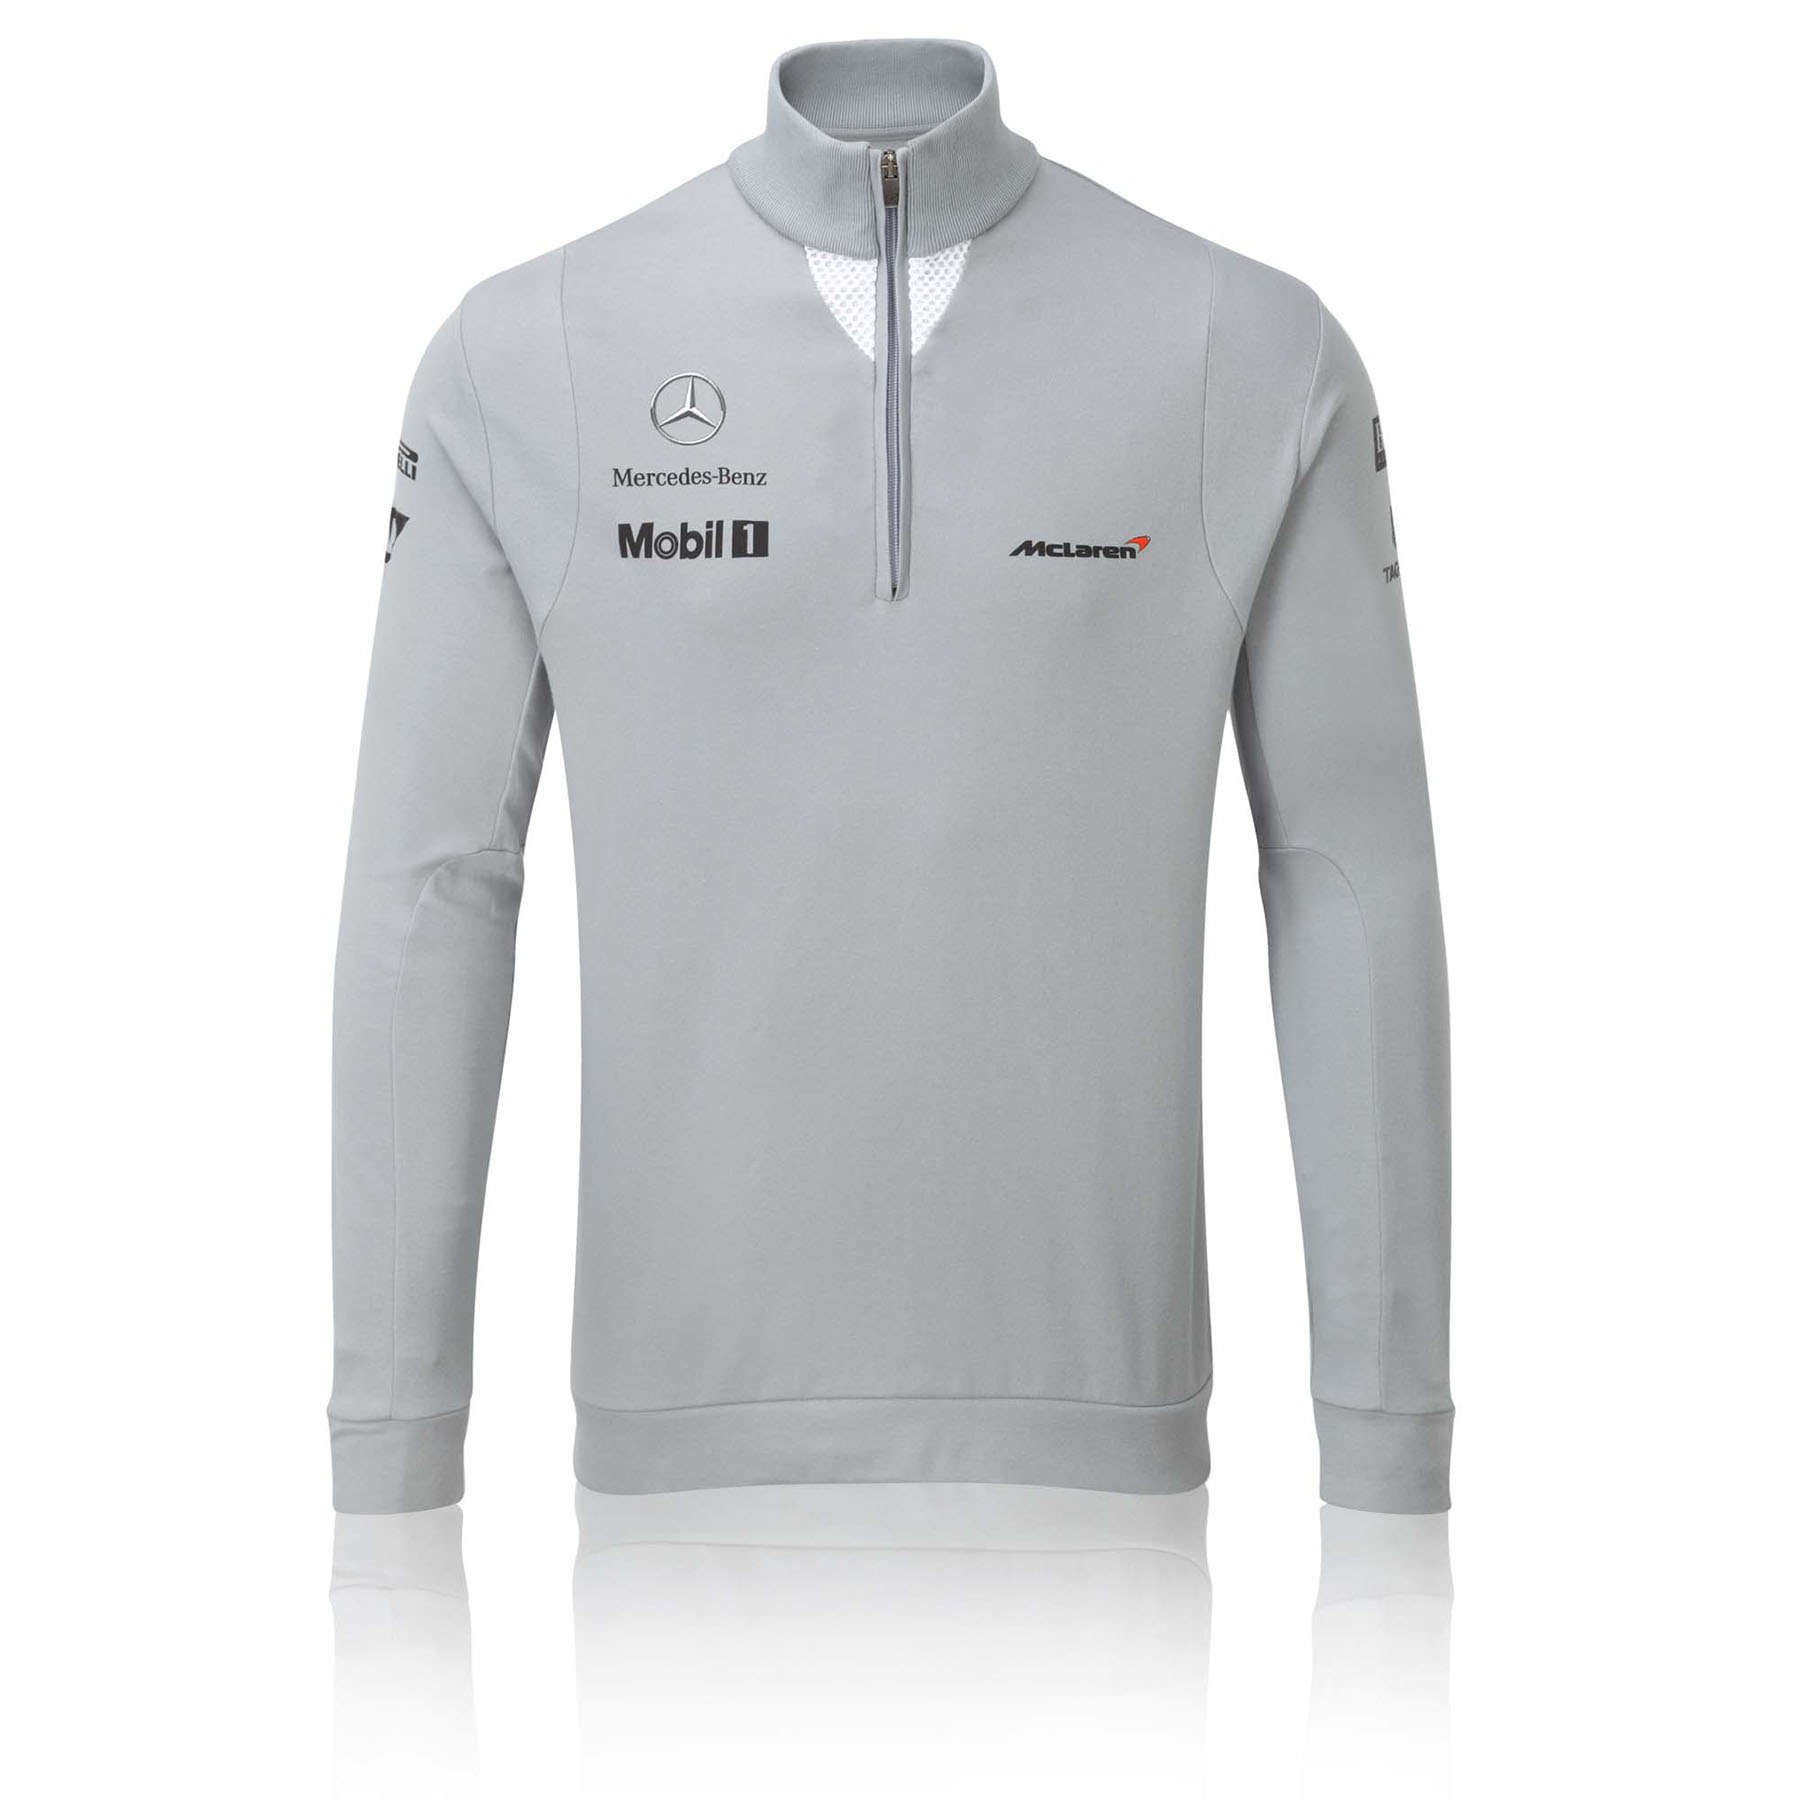 McLaren Mercedes 2014 Team Sweatshirt